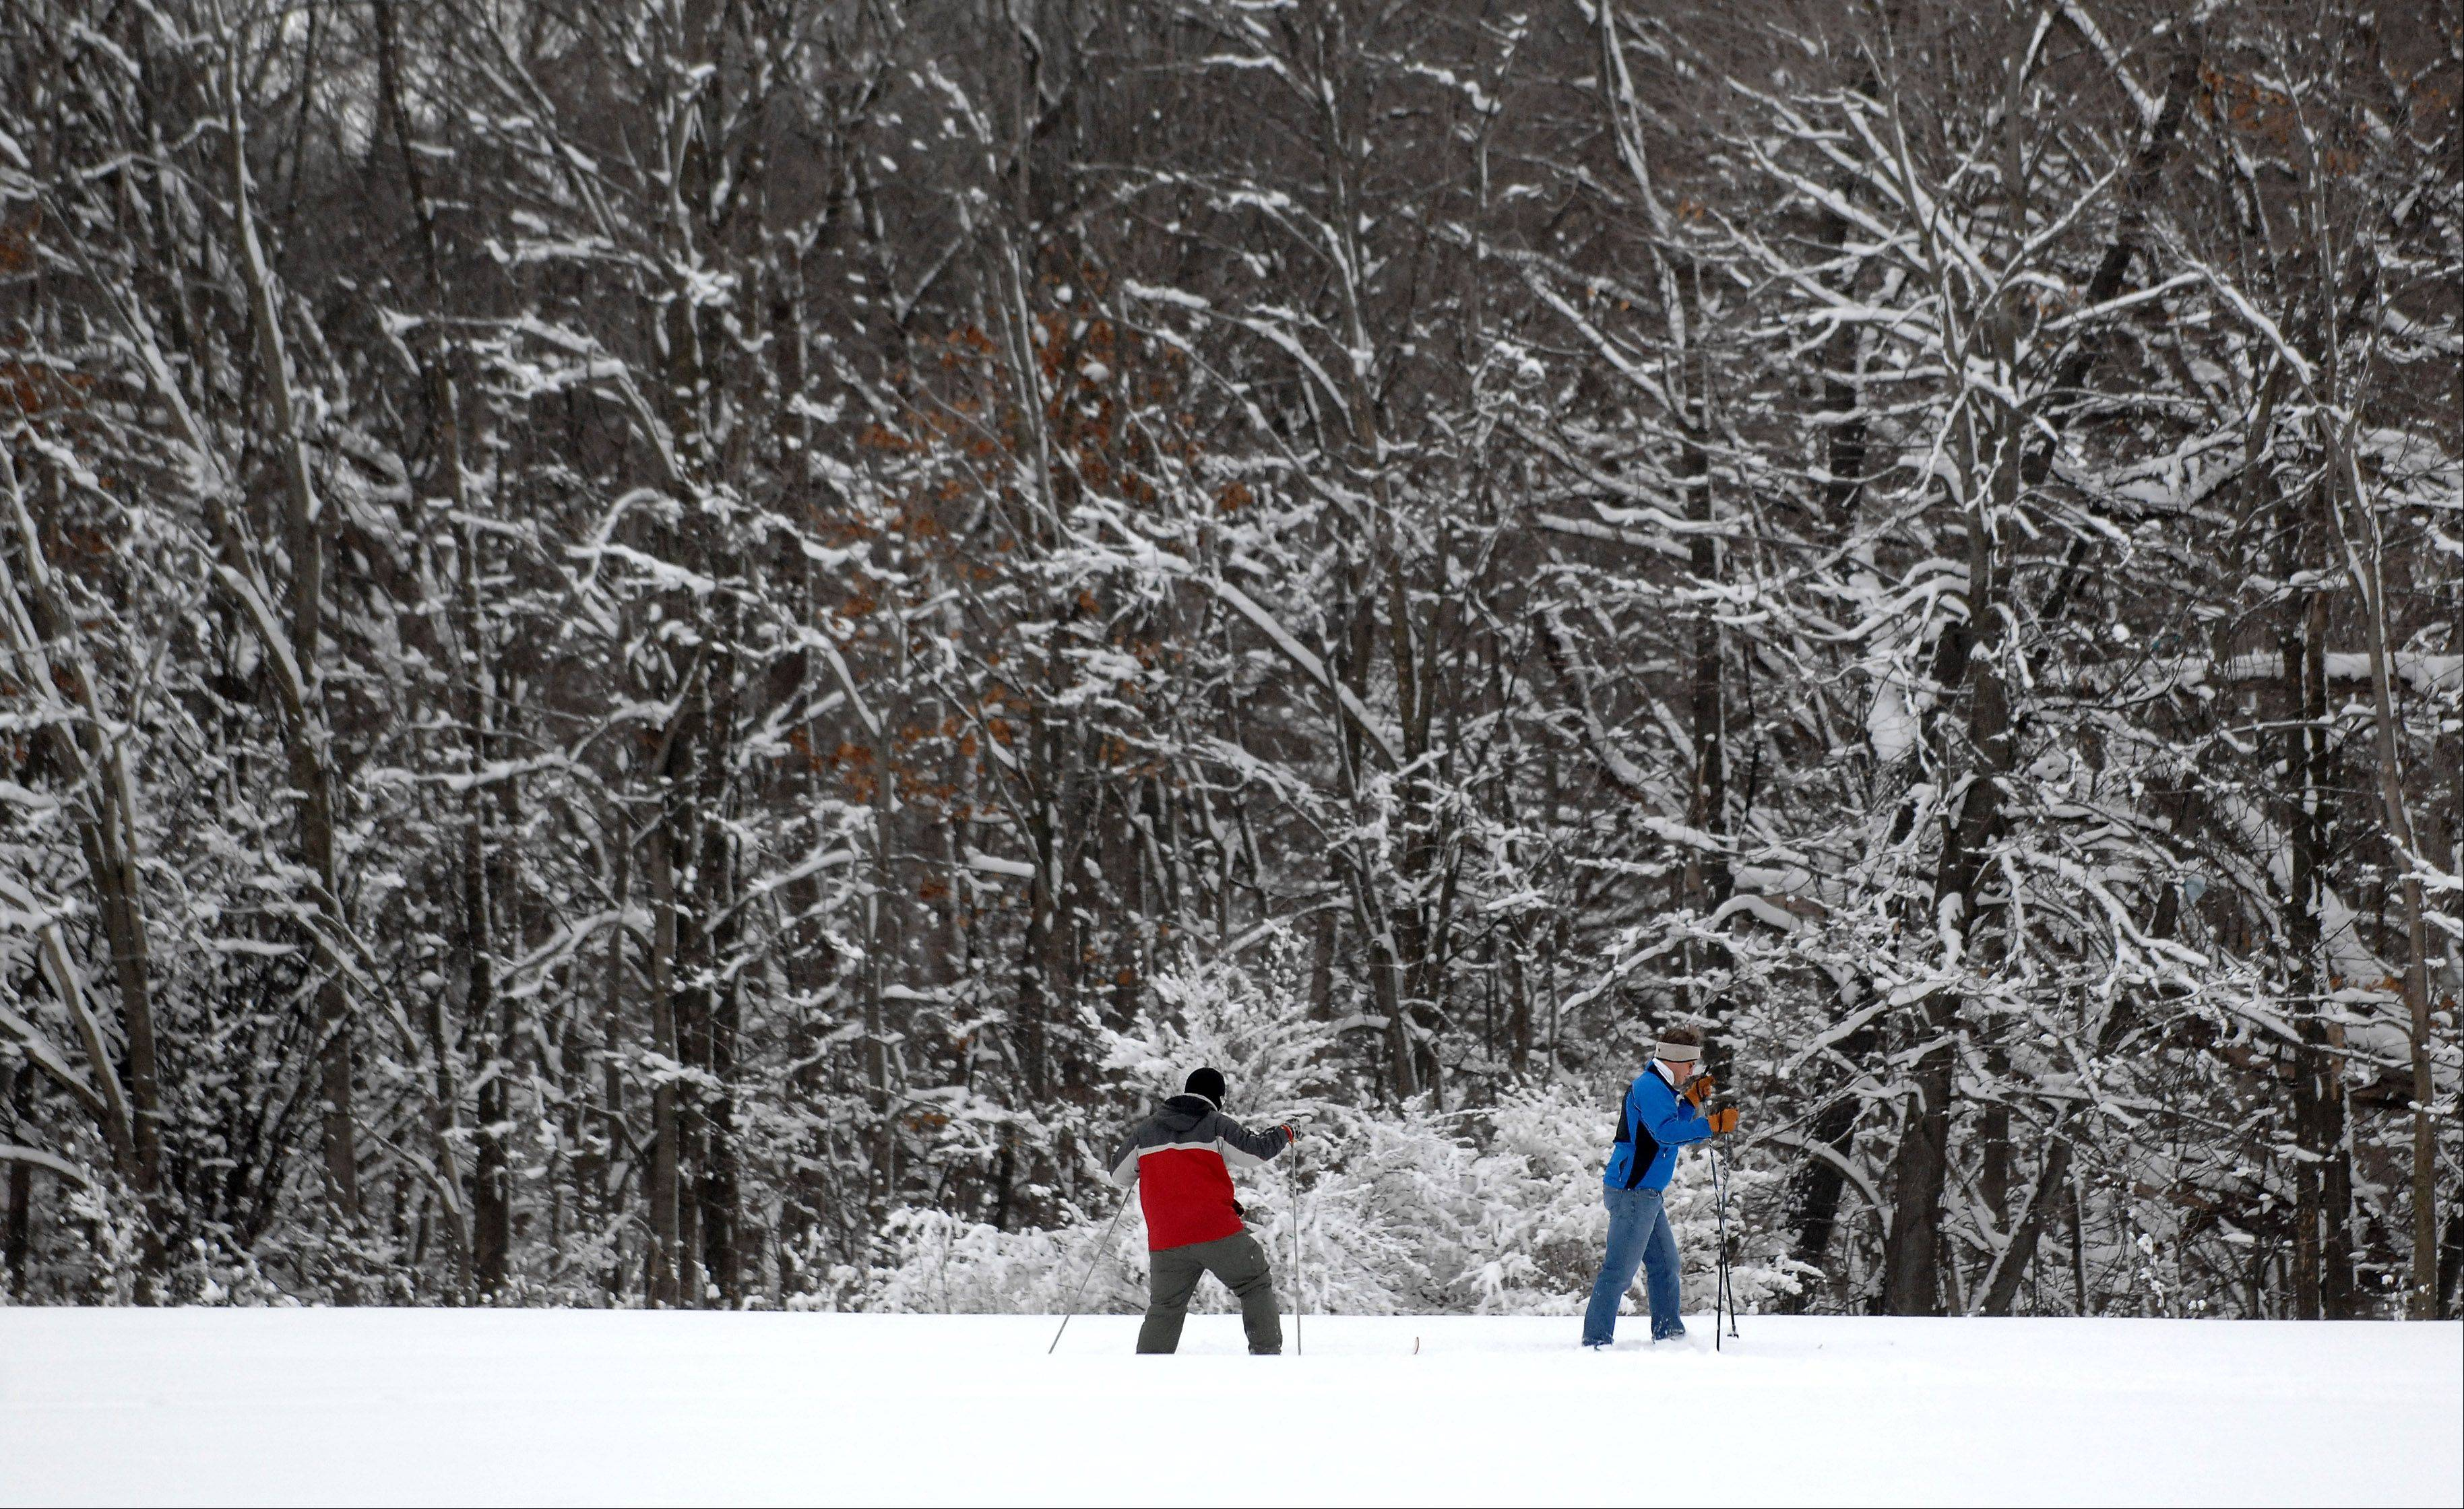 Andrew Kingsley of South Elgin, right, and Scott Kessler of St. Charles, traverse deep snow while cross country skiing through LeRoy Oakes Forest Preserve in St. Charles Wednesday. Kingsley said it was only the second time they'd been out this winter since he prefers cross country skiing when there is more than 10 inches of snow on the ground to avoid scraping up his skis on branches and sticks.